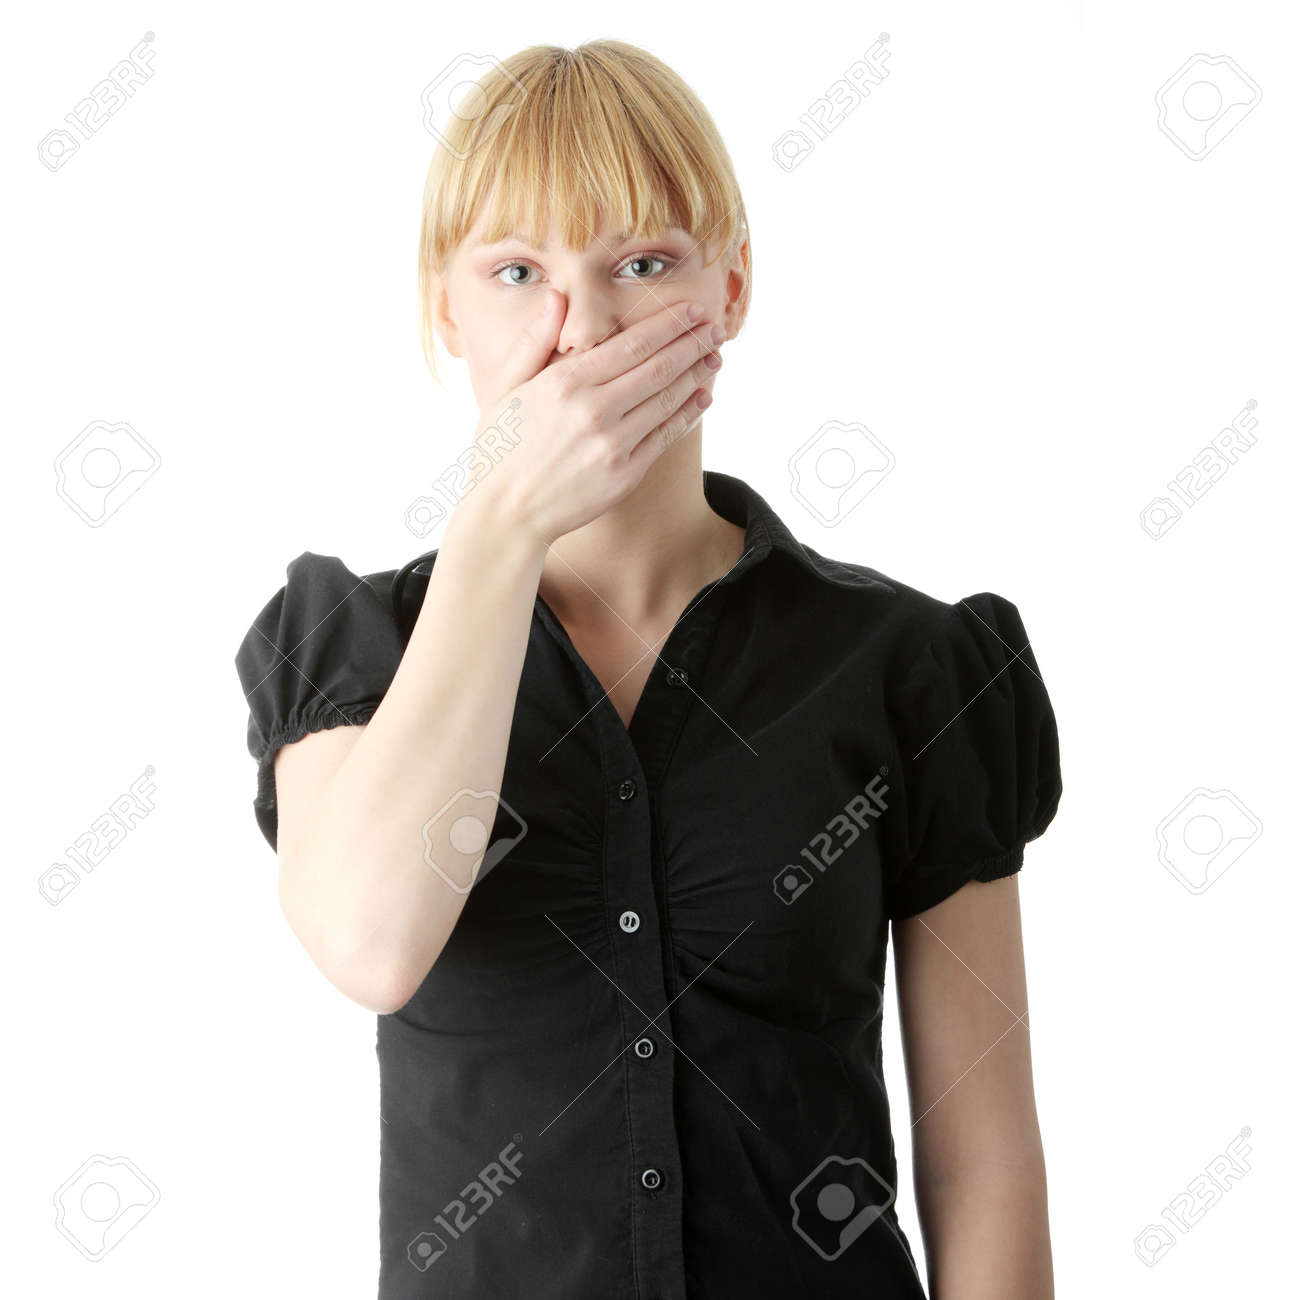 Young woman covering her mouth with hand, isolated on white background Stock Photo - 6175177